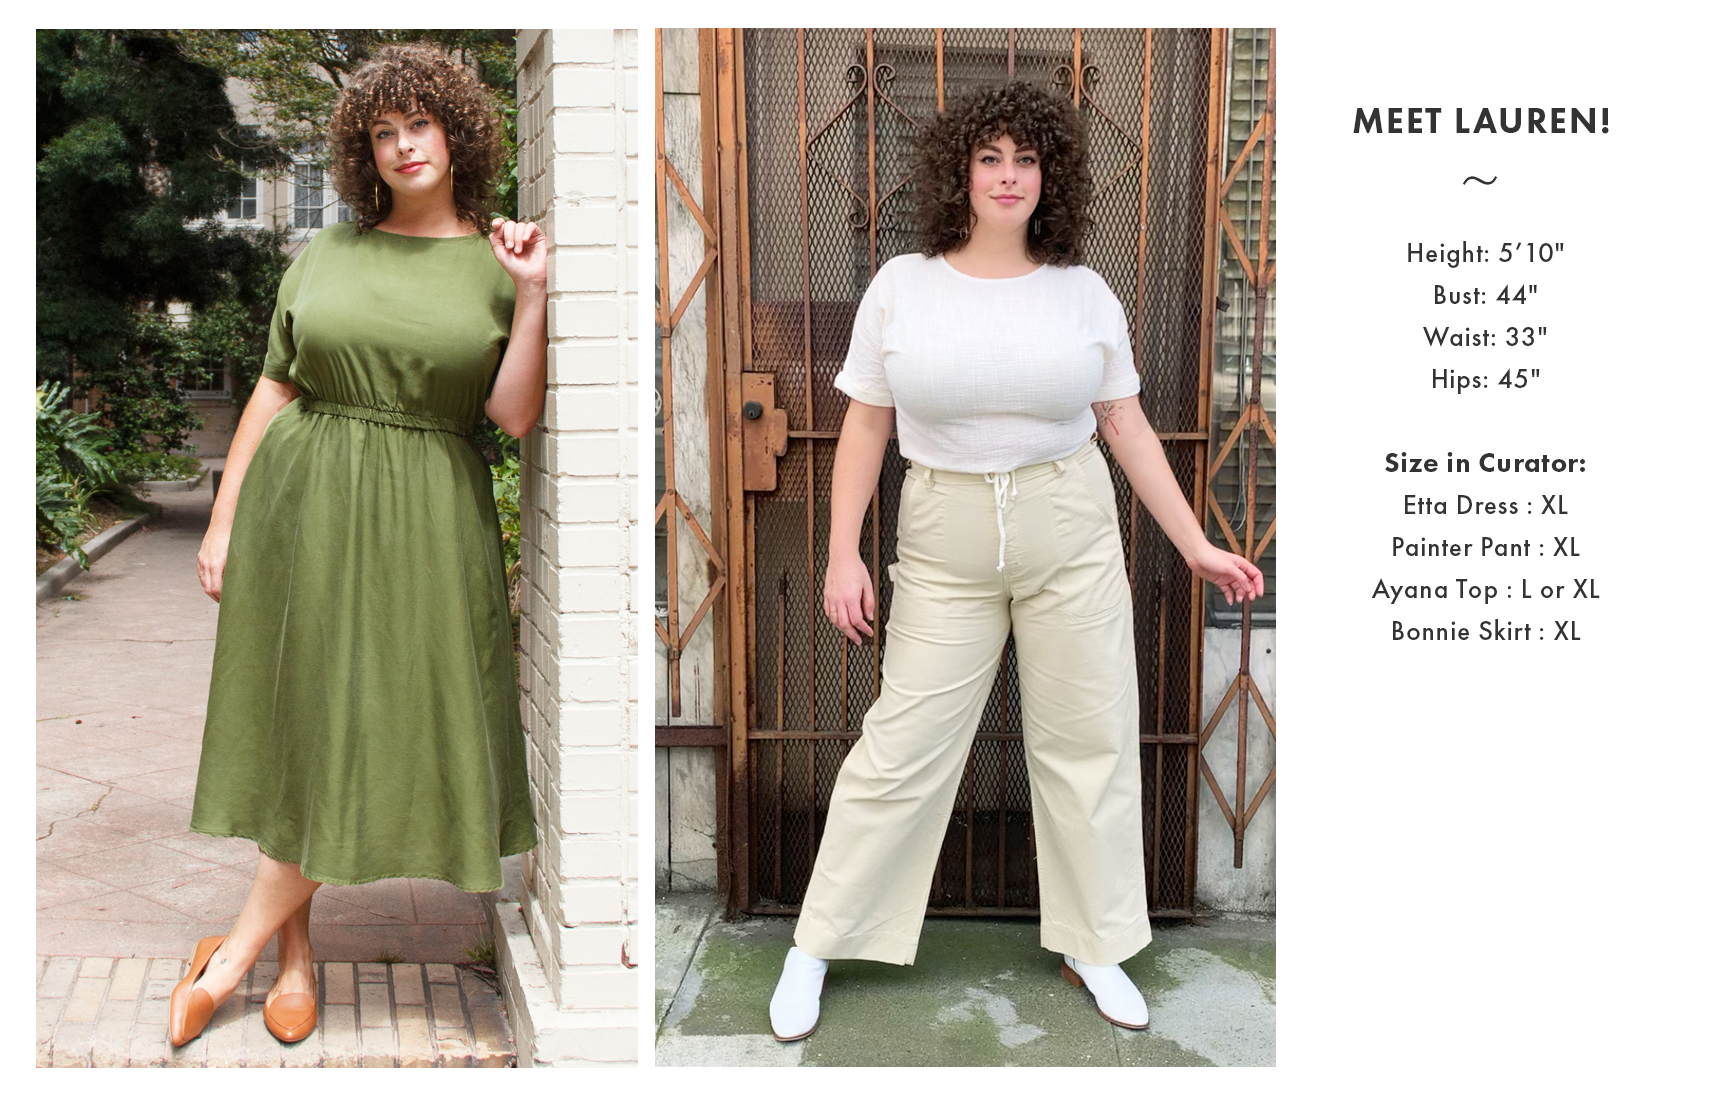 model with size measurements